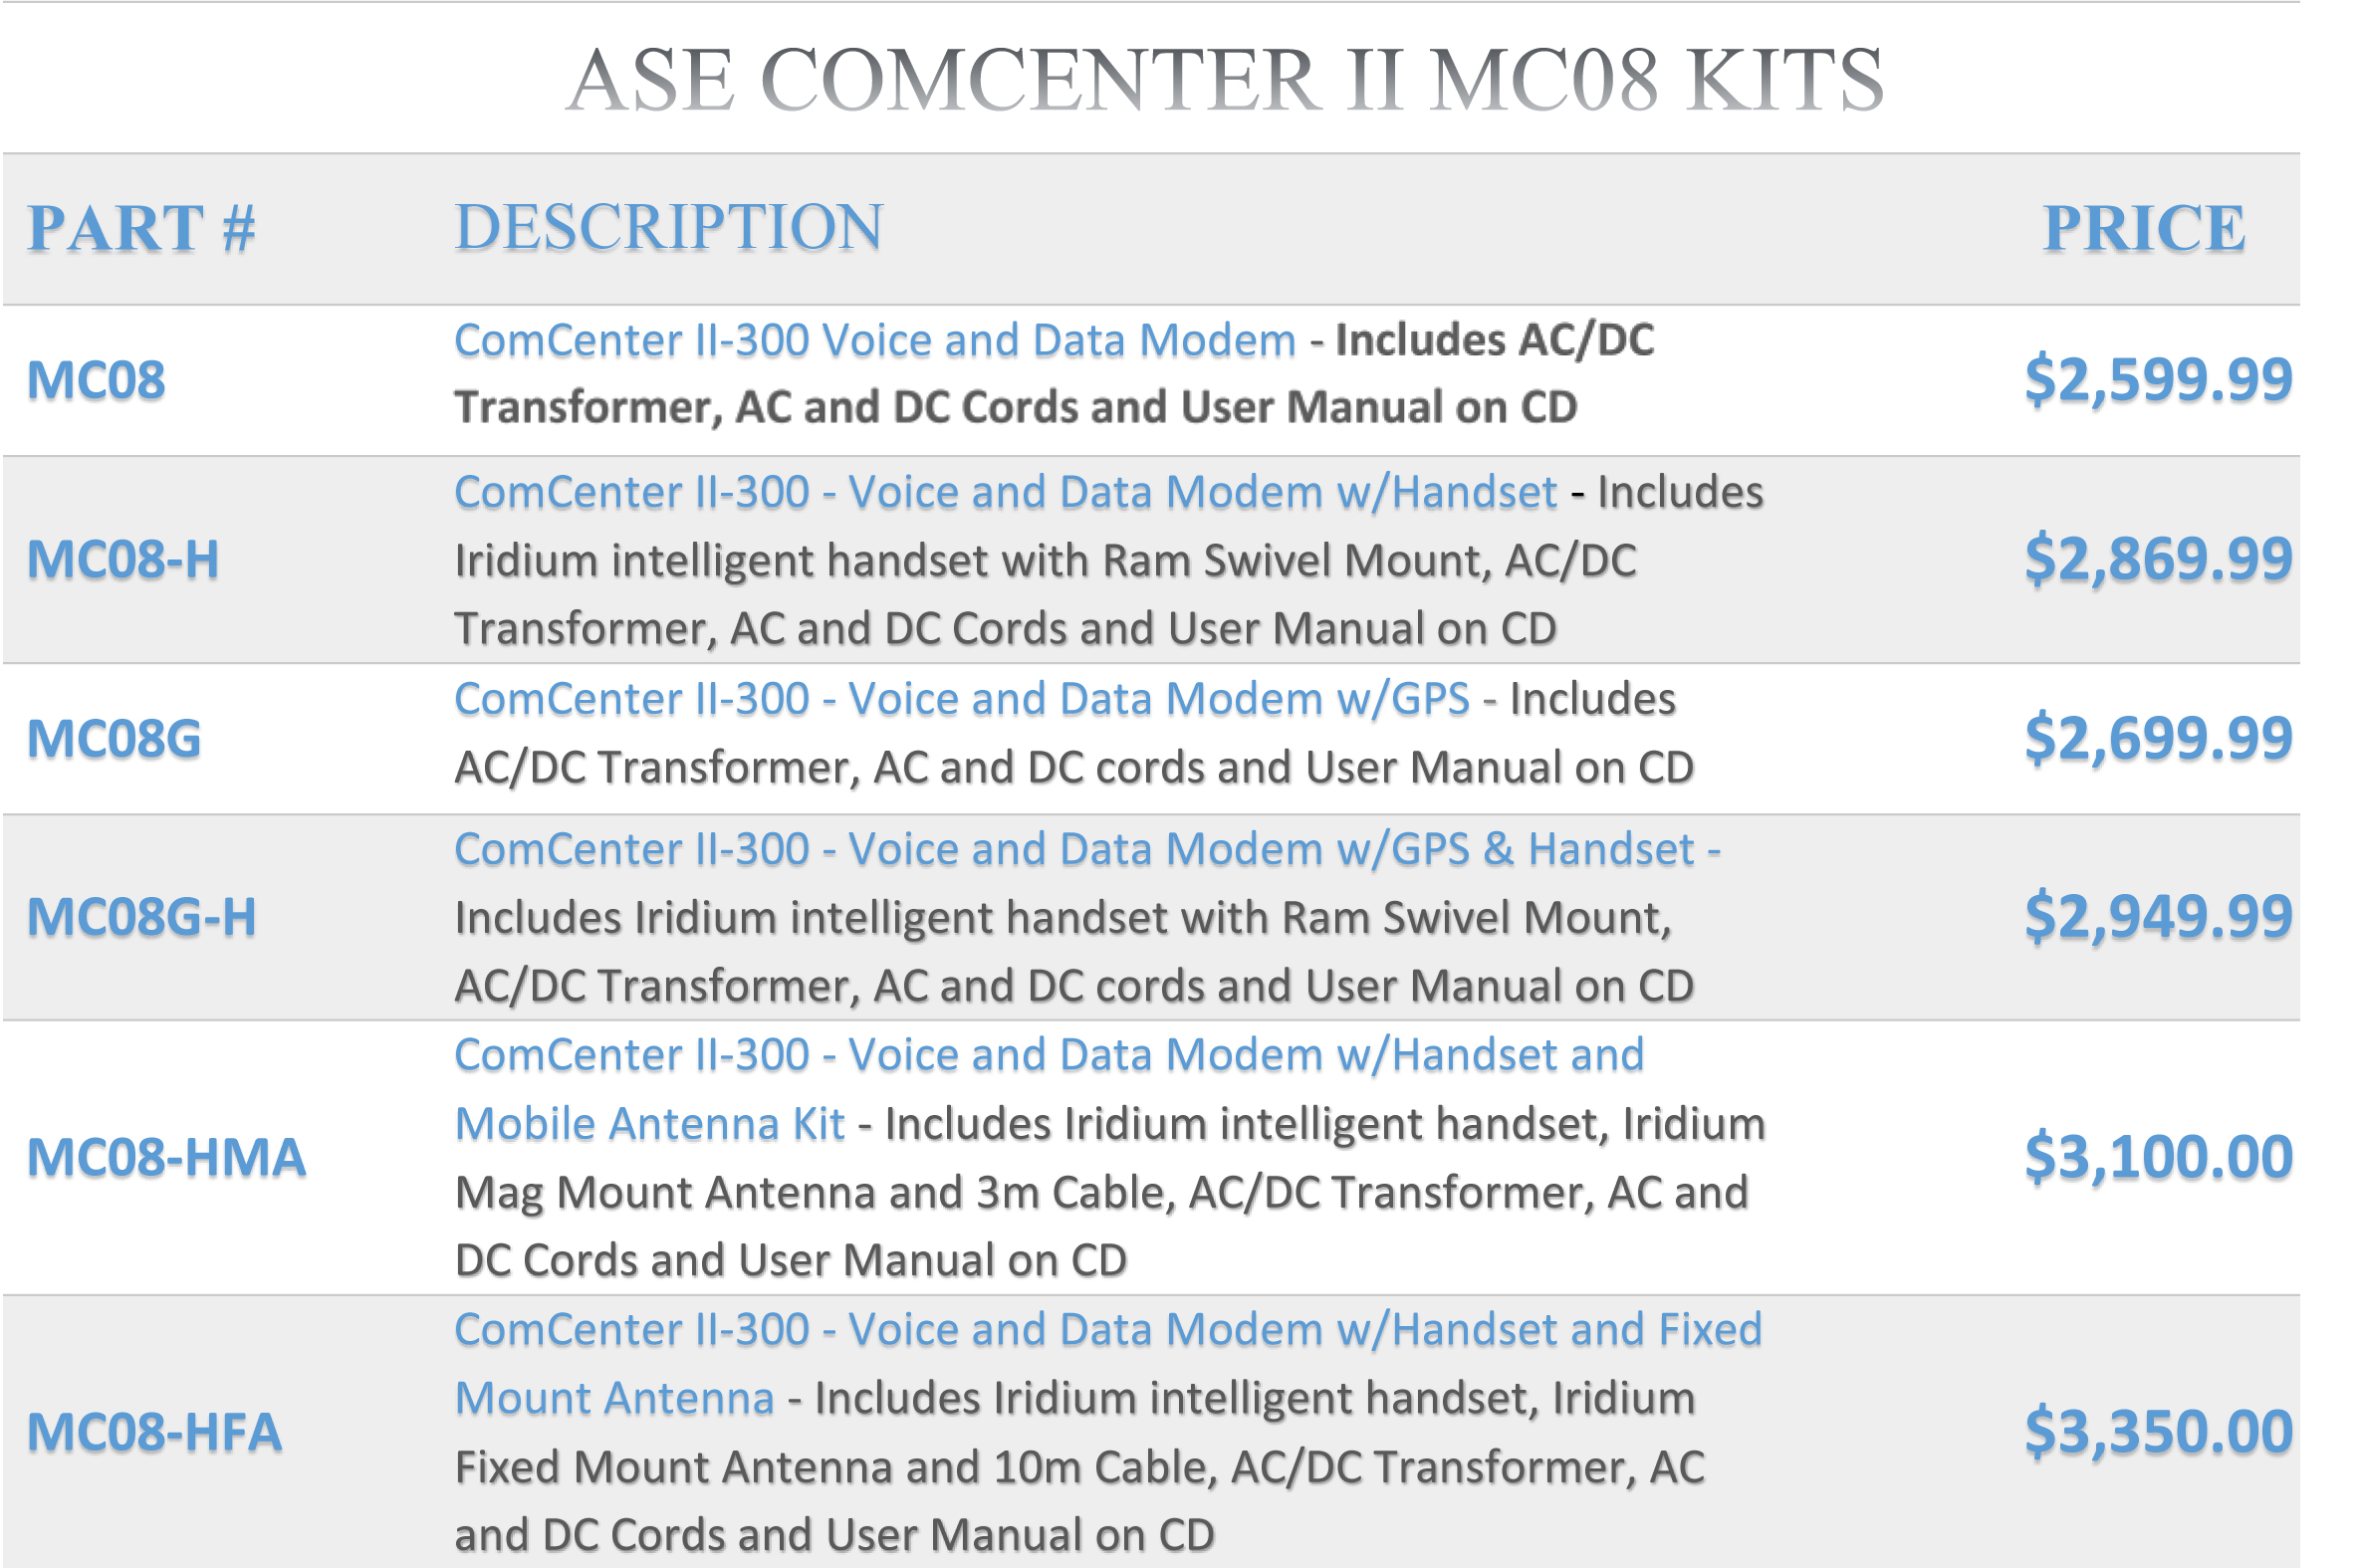 iridium-ase-comcenter-ii-mc08-kits-price-charts-1.jpg